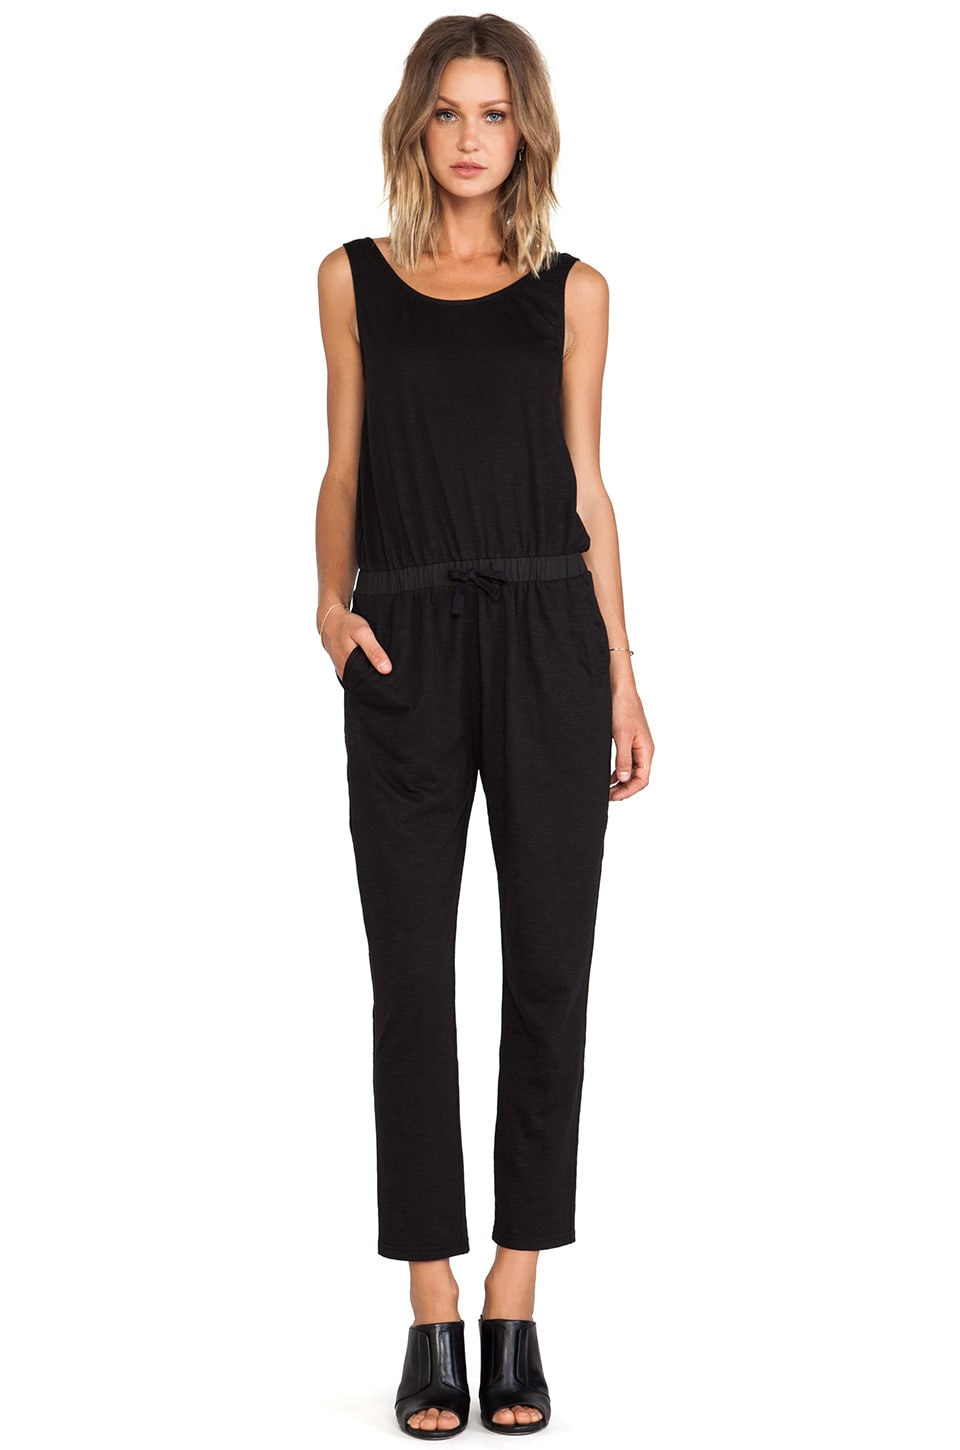 BLQ BASIQ BLQ Basics Scoop Back Jumpsuit in Black